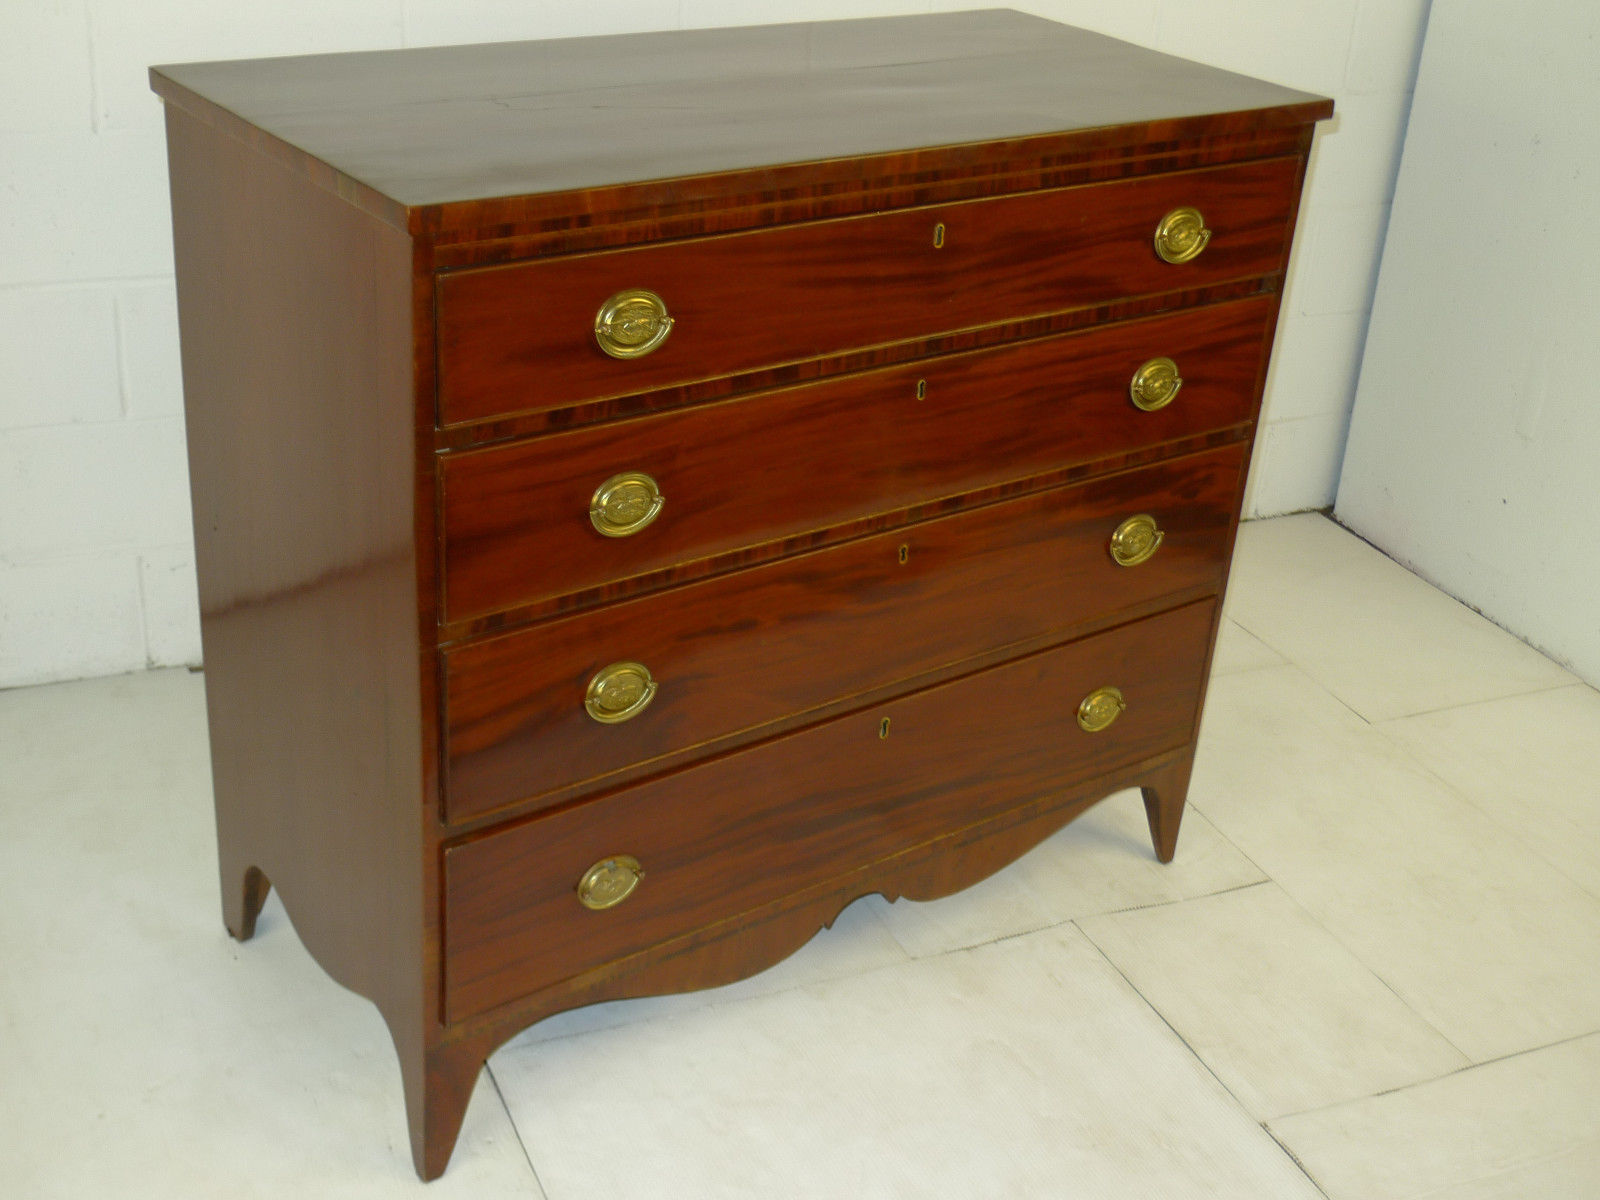 Amer. Federal Period Hepplewhite Mahogany Chest Drawers Dresser